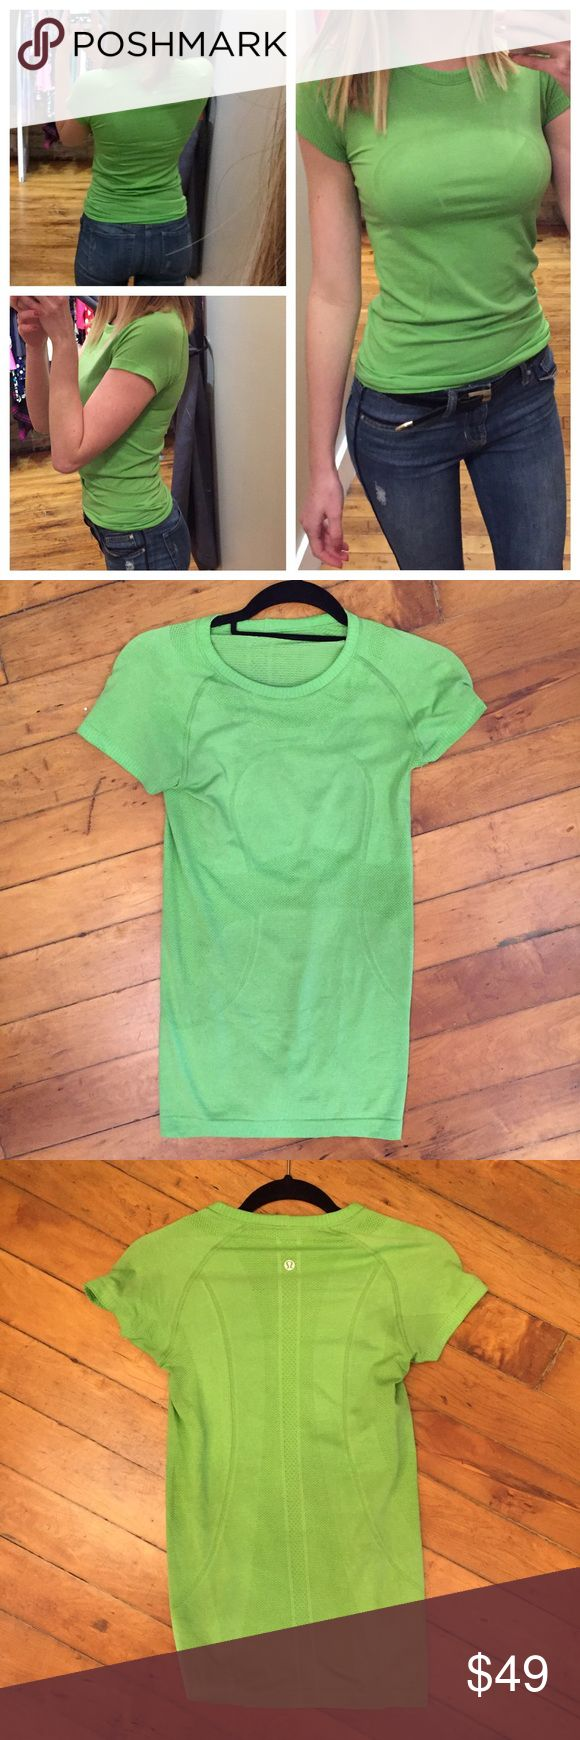 Lululemon green short sleeve top size 4 ⚜️I love receiving offers through the offer button!⚜️ Great condition, as seen in pictures! Fast same or next day shipping!📨 Open to offers but I don't negotiate in the comments so please use the offer button😊 lululemon athletica Tops